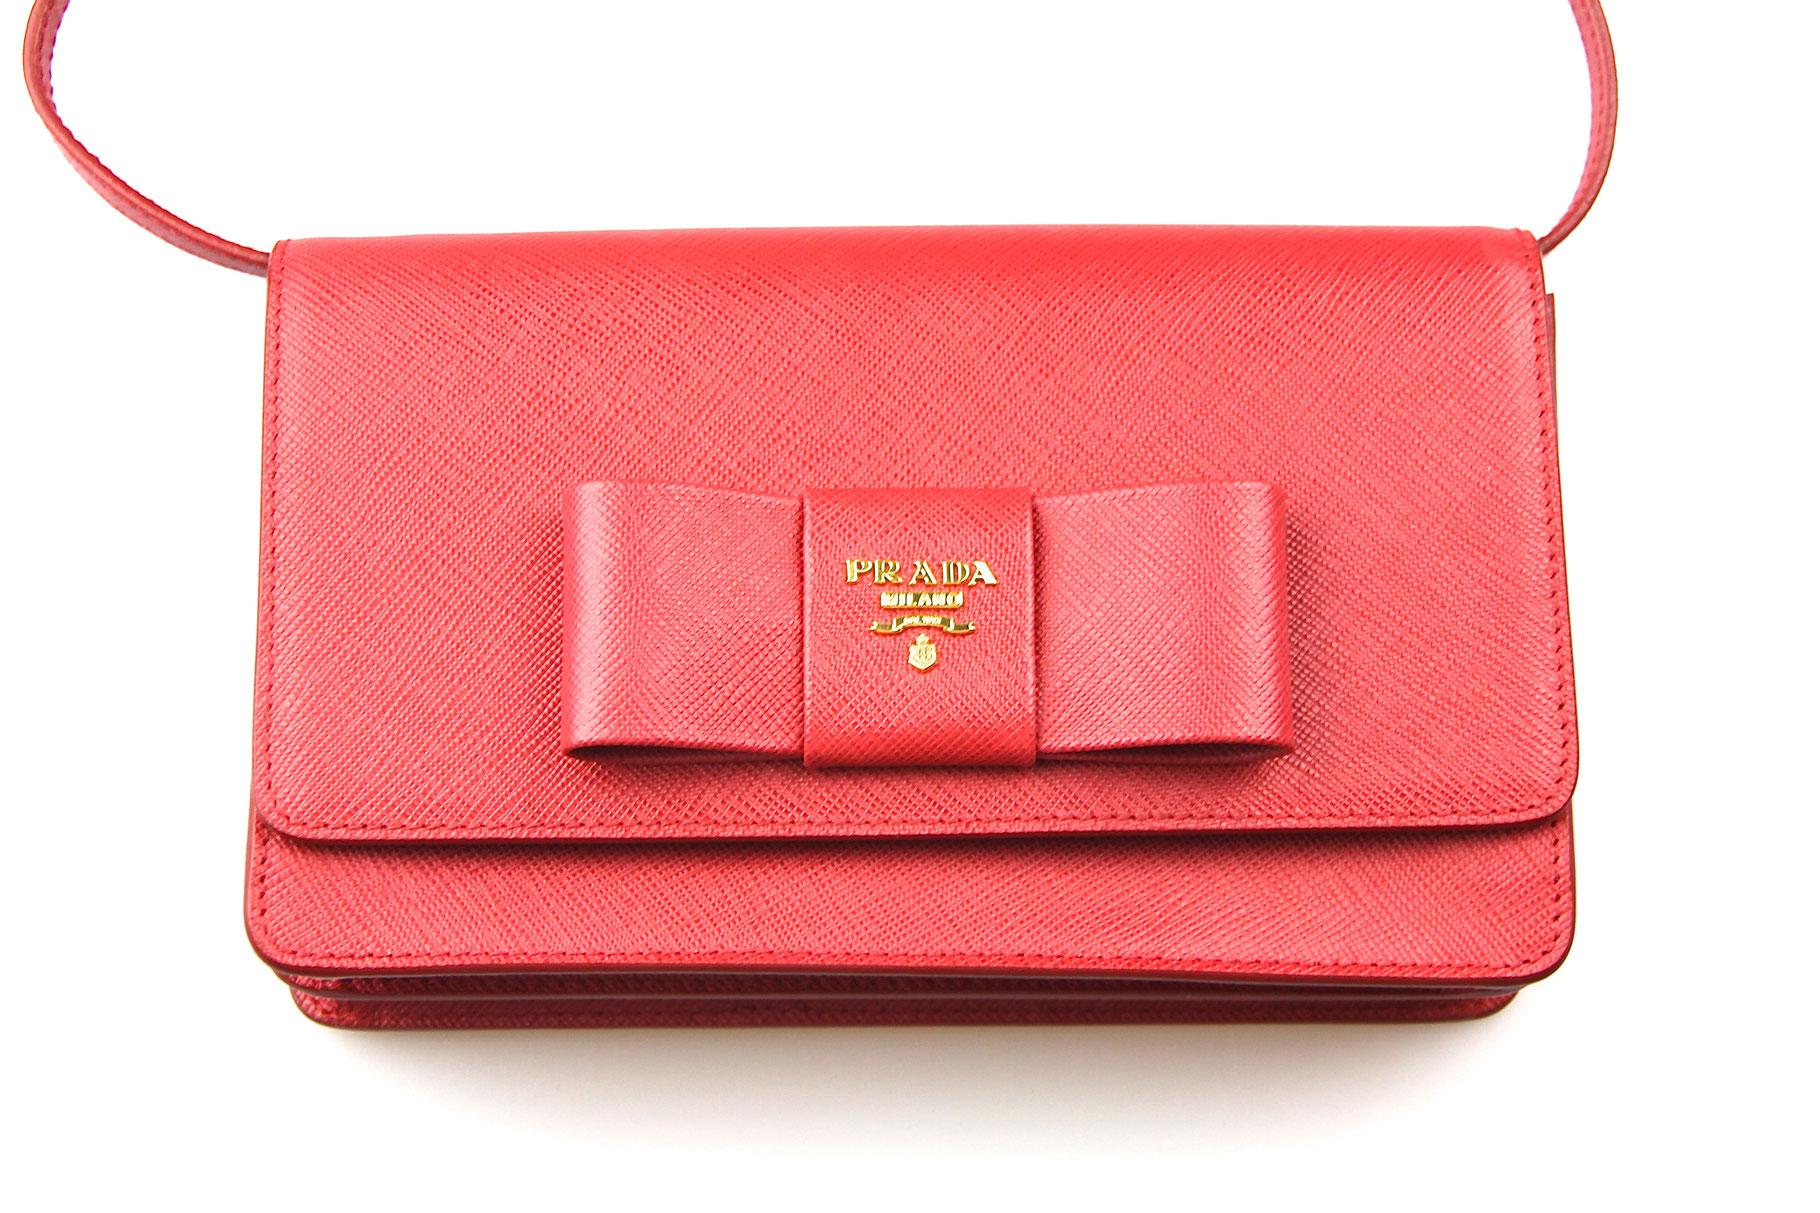 77d679008d555 Prada Saffiano Wallet on Chain in Rot